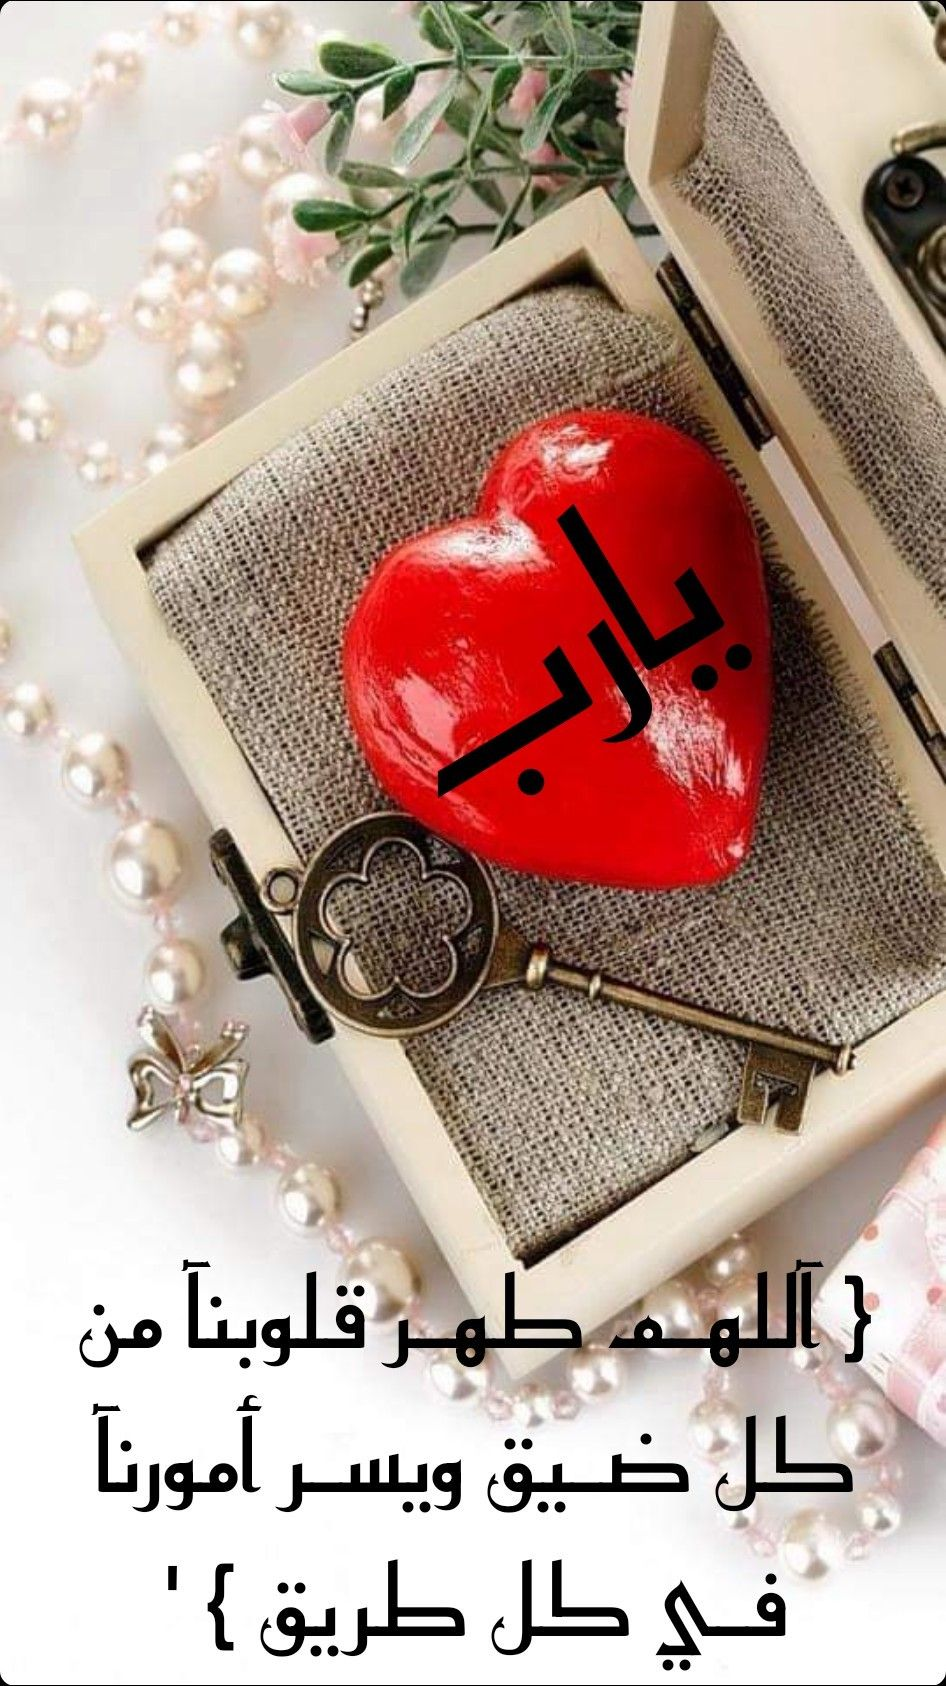 Pin By ناديا عفانه On ادعية واقوال Islam Facts Personalized Items Decorative Tray